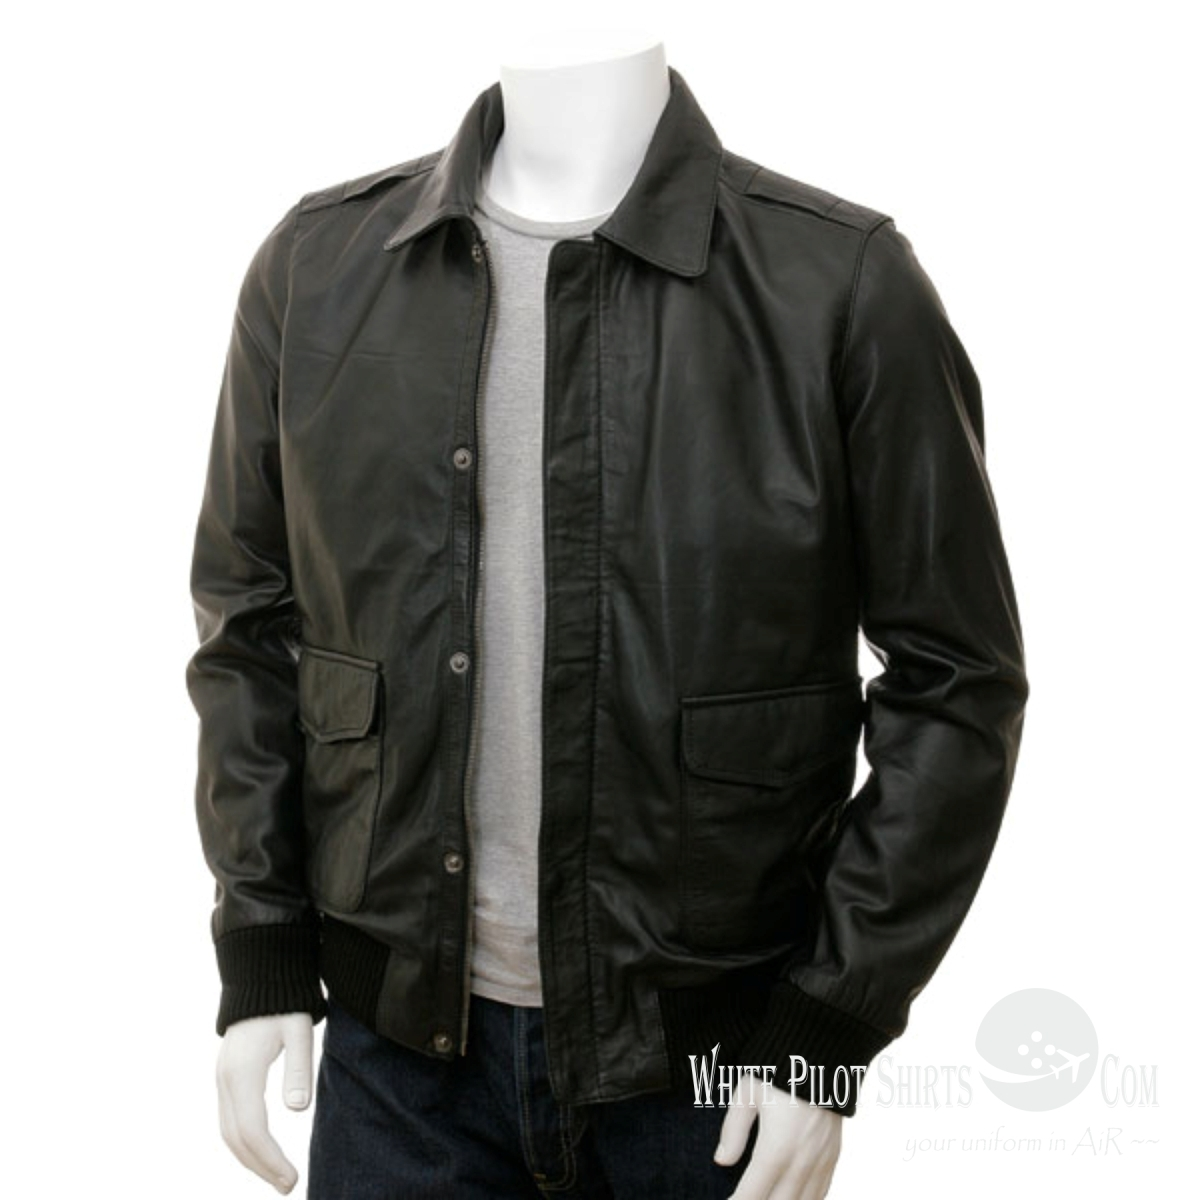 A lightweight, sleek version of our USAF A-2 Flight Jacket, our Lightweight Pilot A-2 is a handsome variation of classic style. Alpha G-1 Leather Jacket (Black) $ Now: $